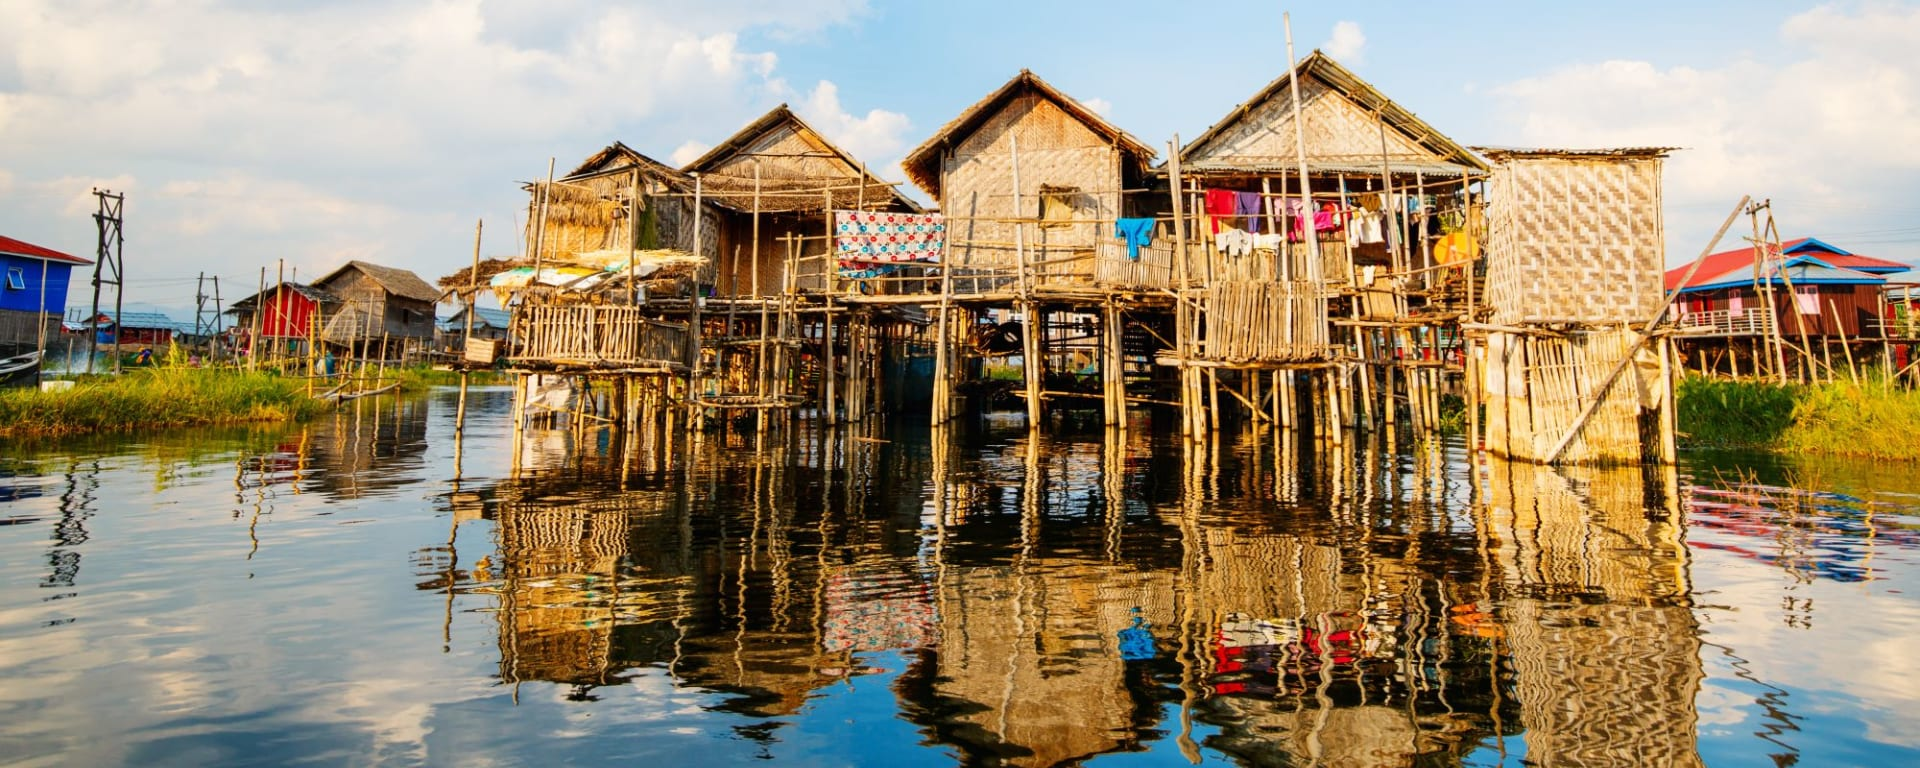 Le pays doré de Yangon: Inle Lake Floating Village